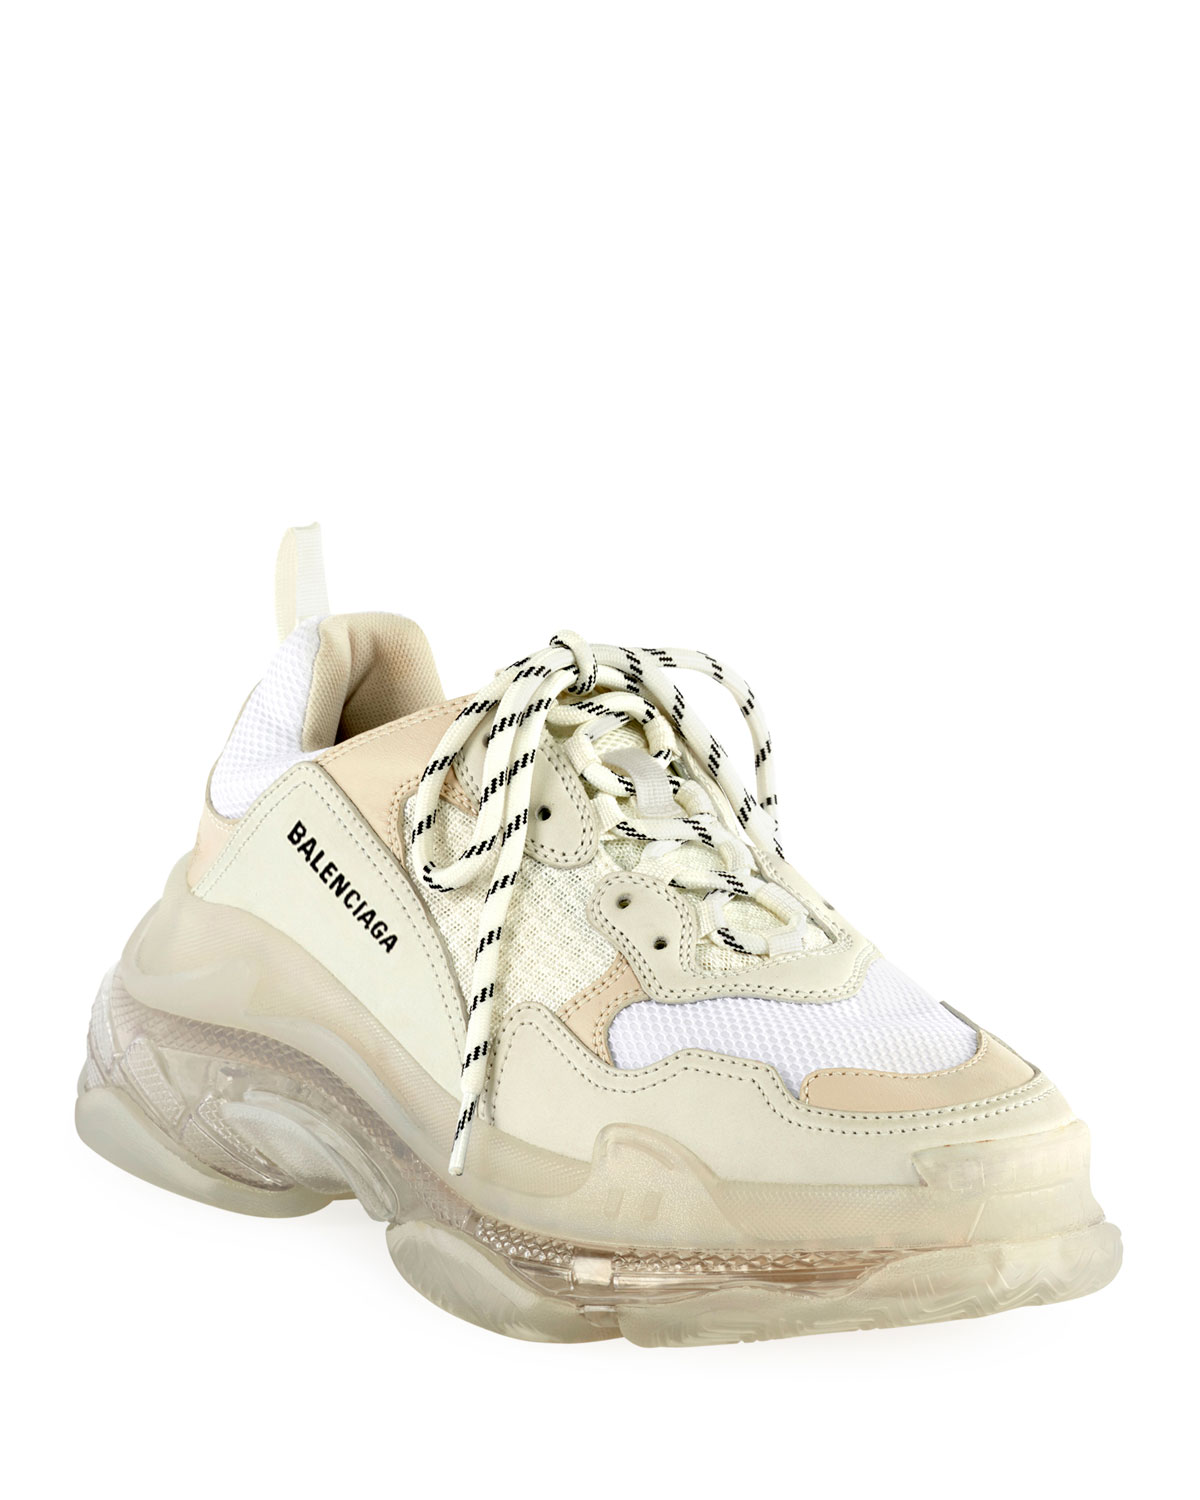 balenciaga sneakers white